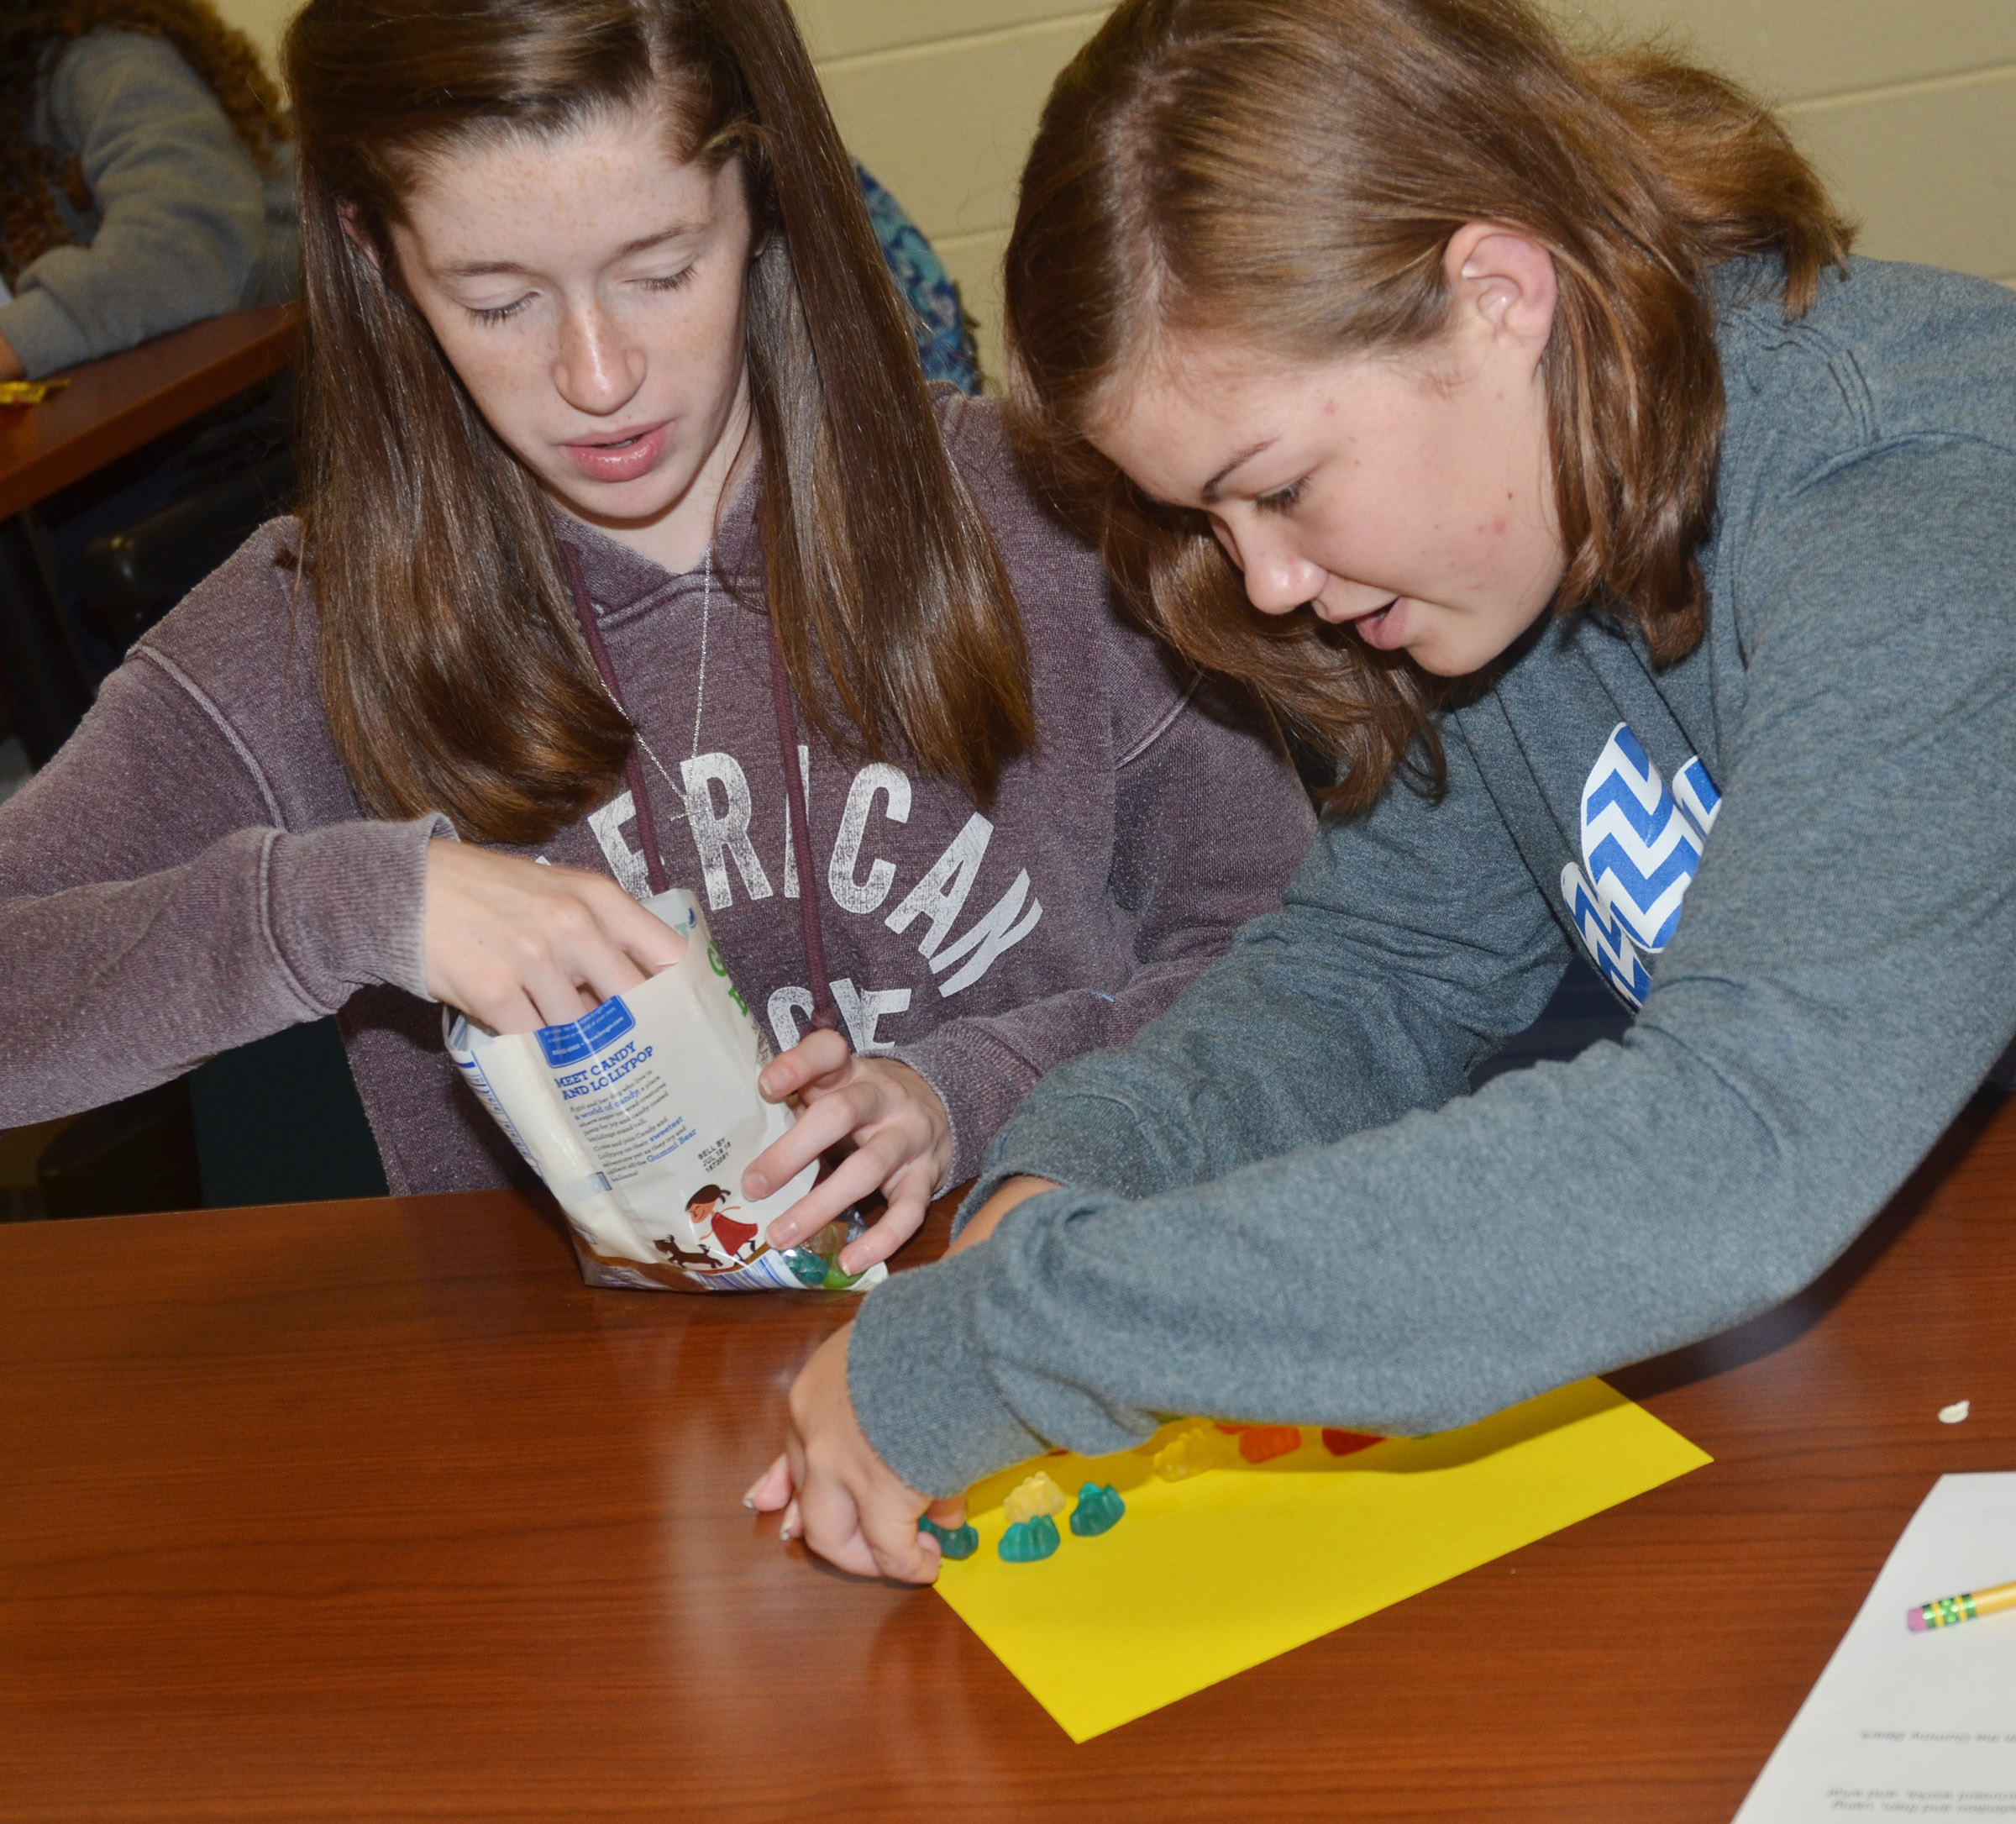 CHS sophomores Gracyne Hash, at left, and Shelby Smith build their gummy bear government model.